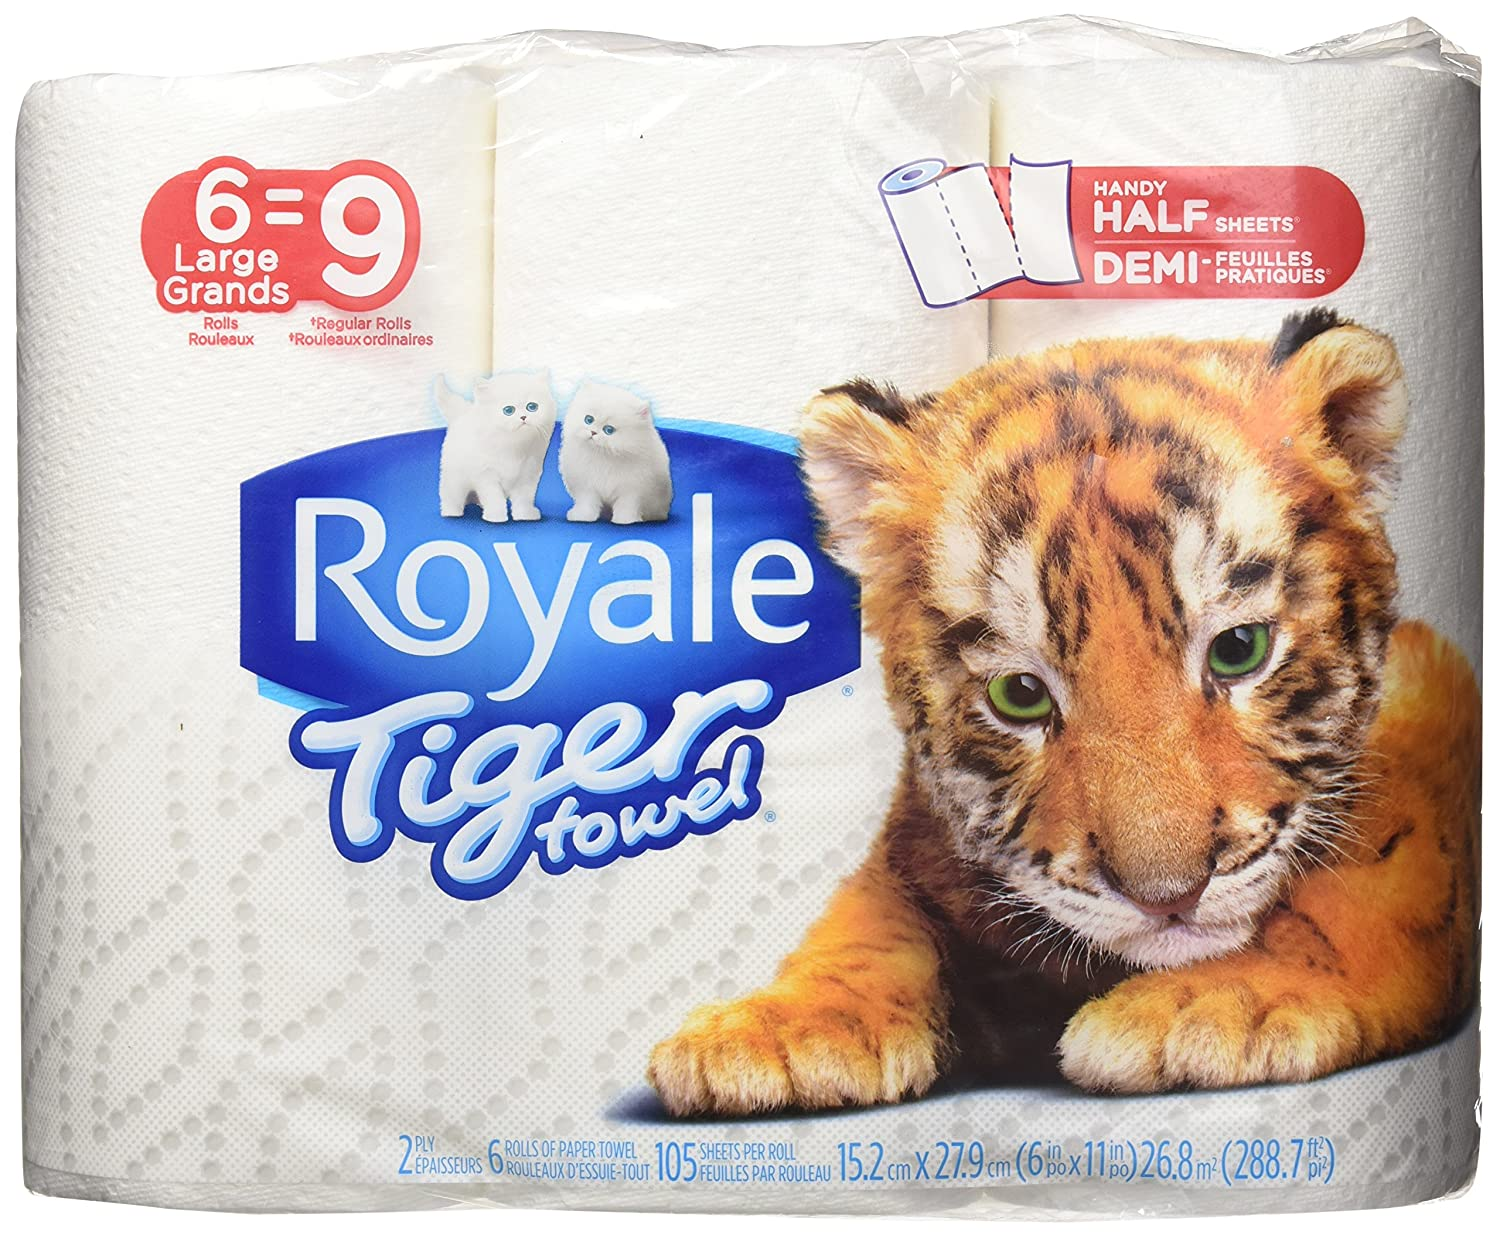 Royale Tiger Towel Paper Towels, Handy Half Sheets, 6 Large Rolls Irving Consumer Products Ltd 63435-72035-2